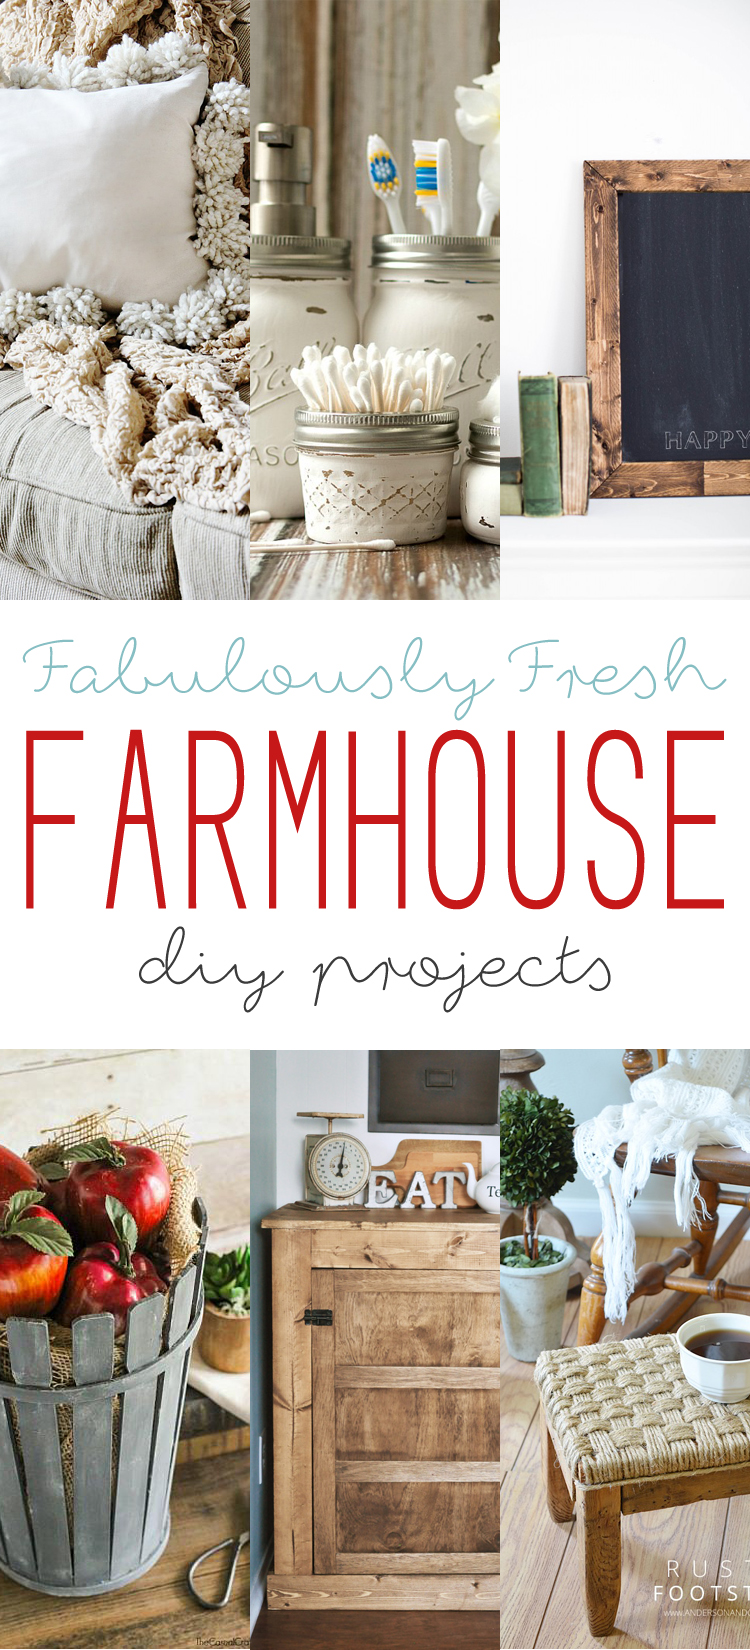 FarmhouseDIY-tower-001